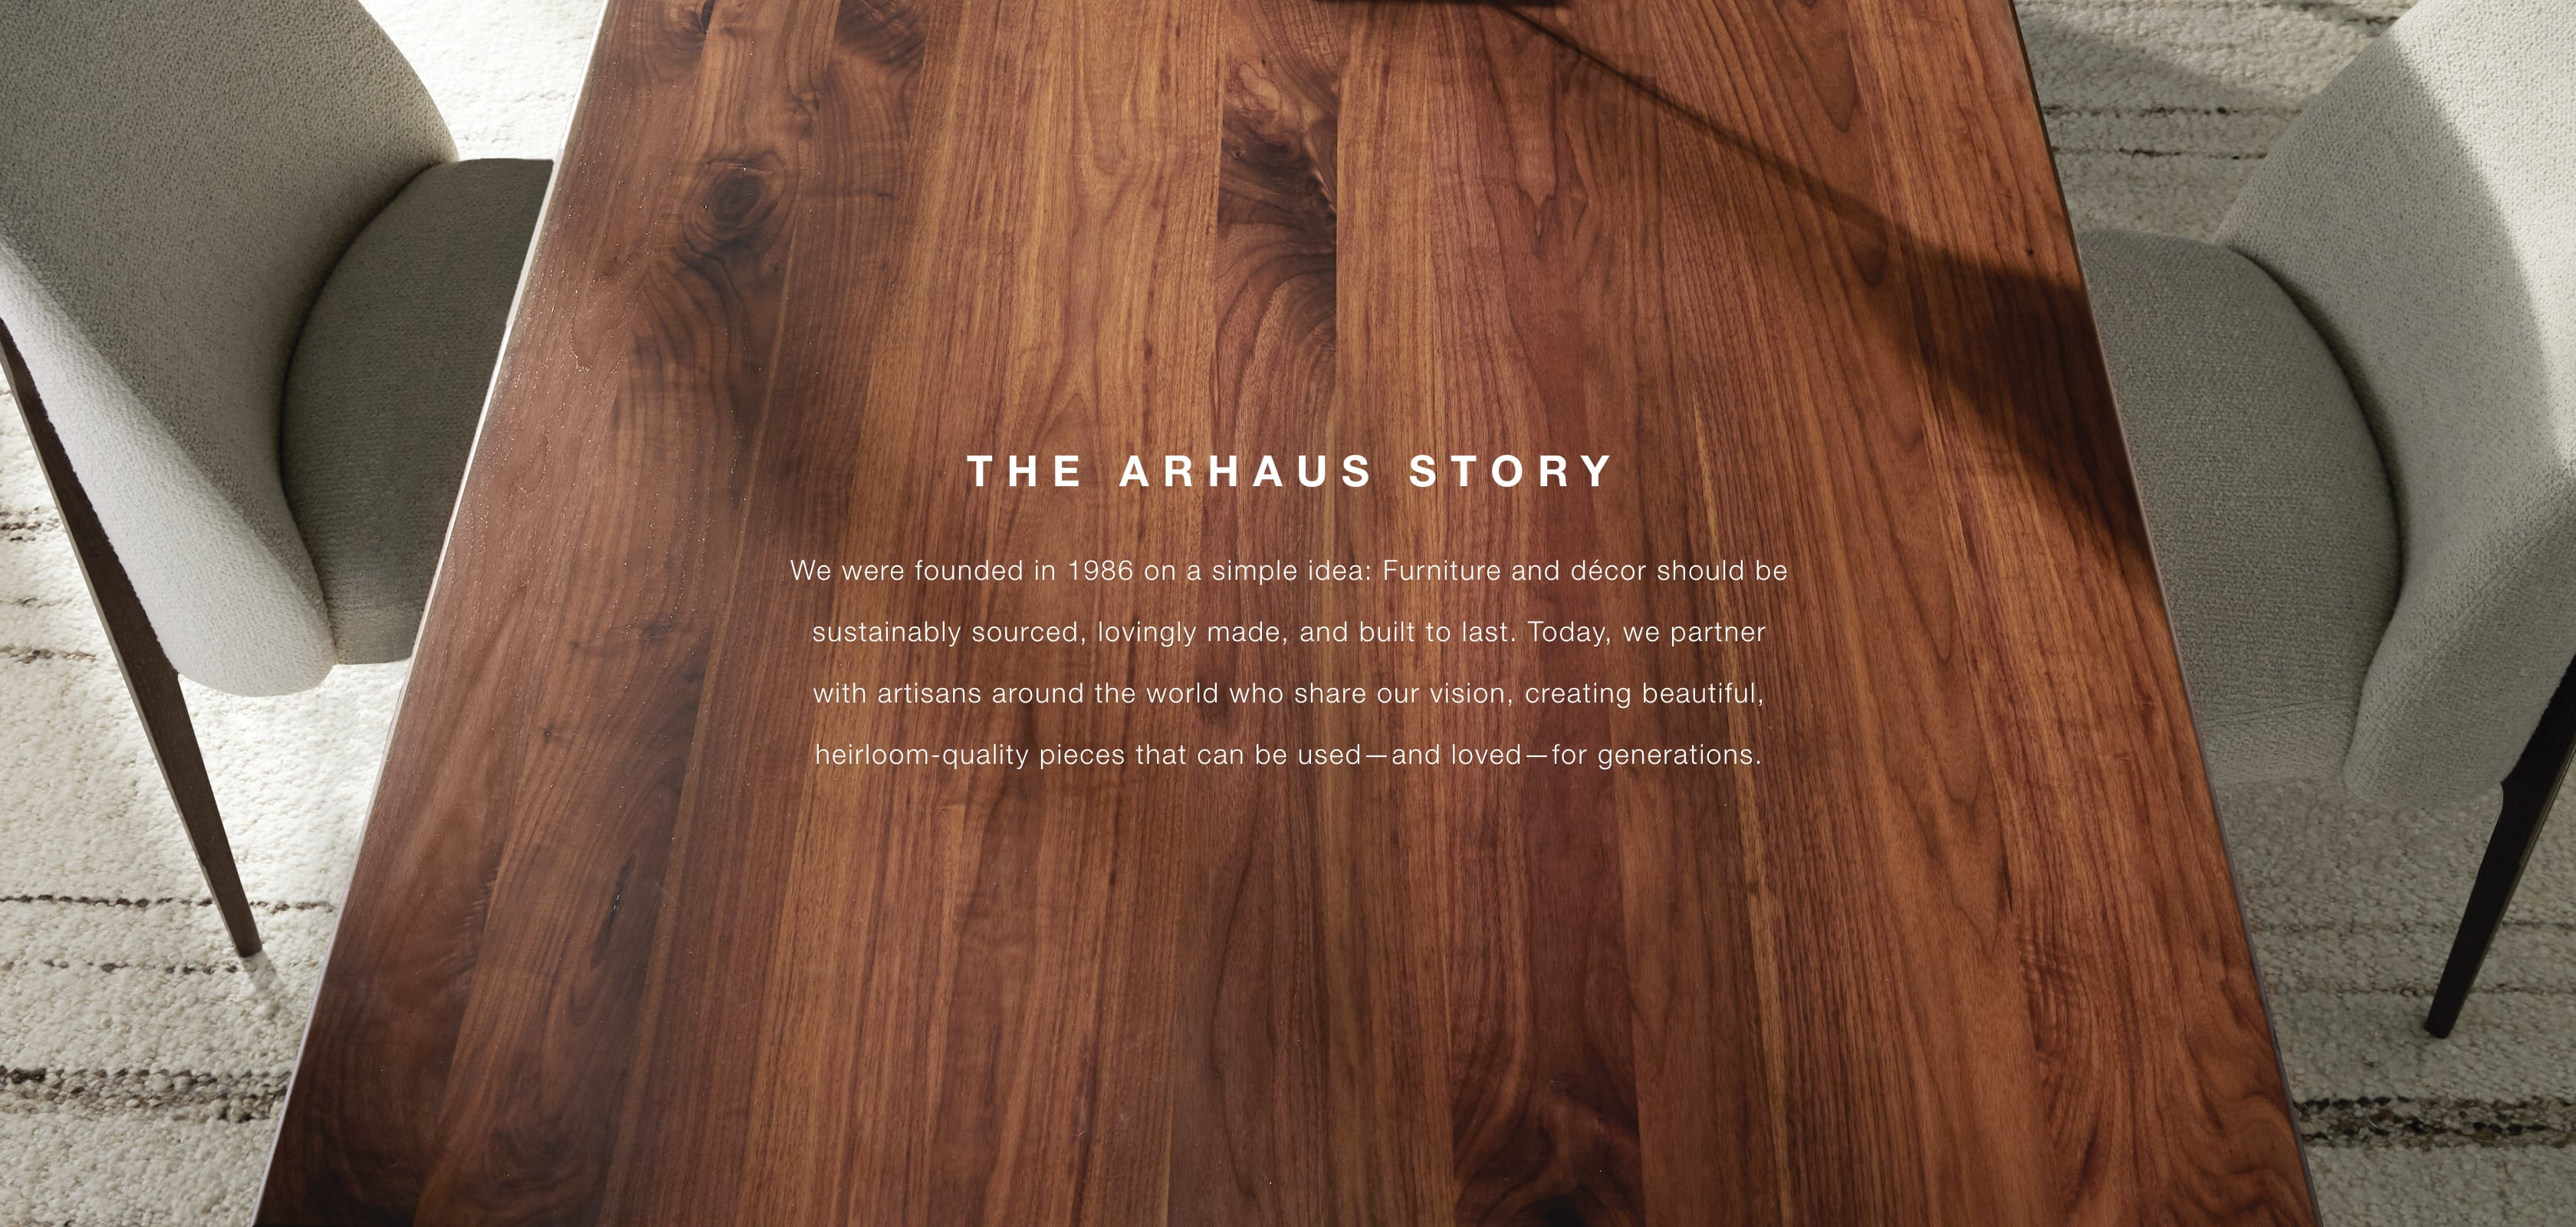 The Arhaus Story